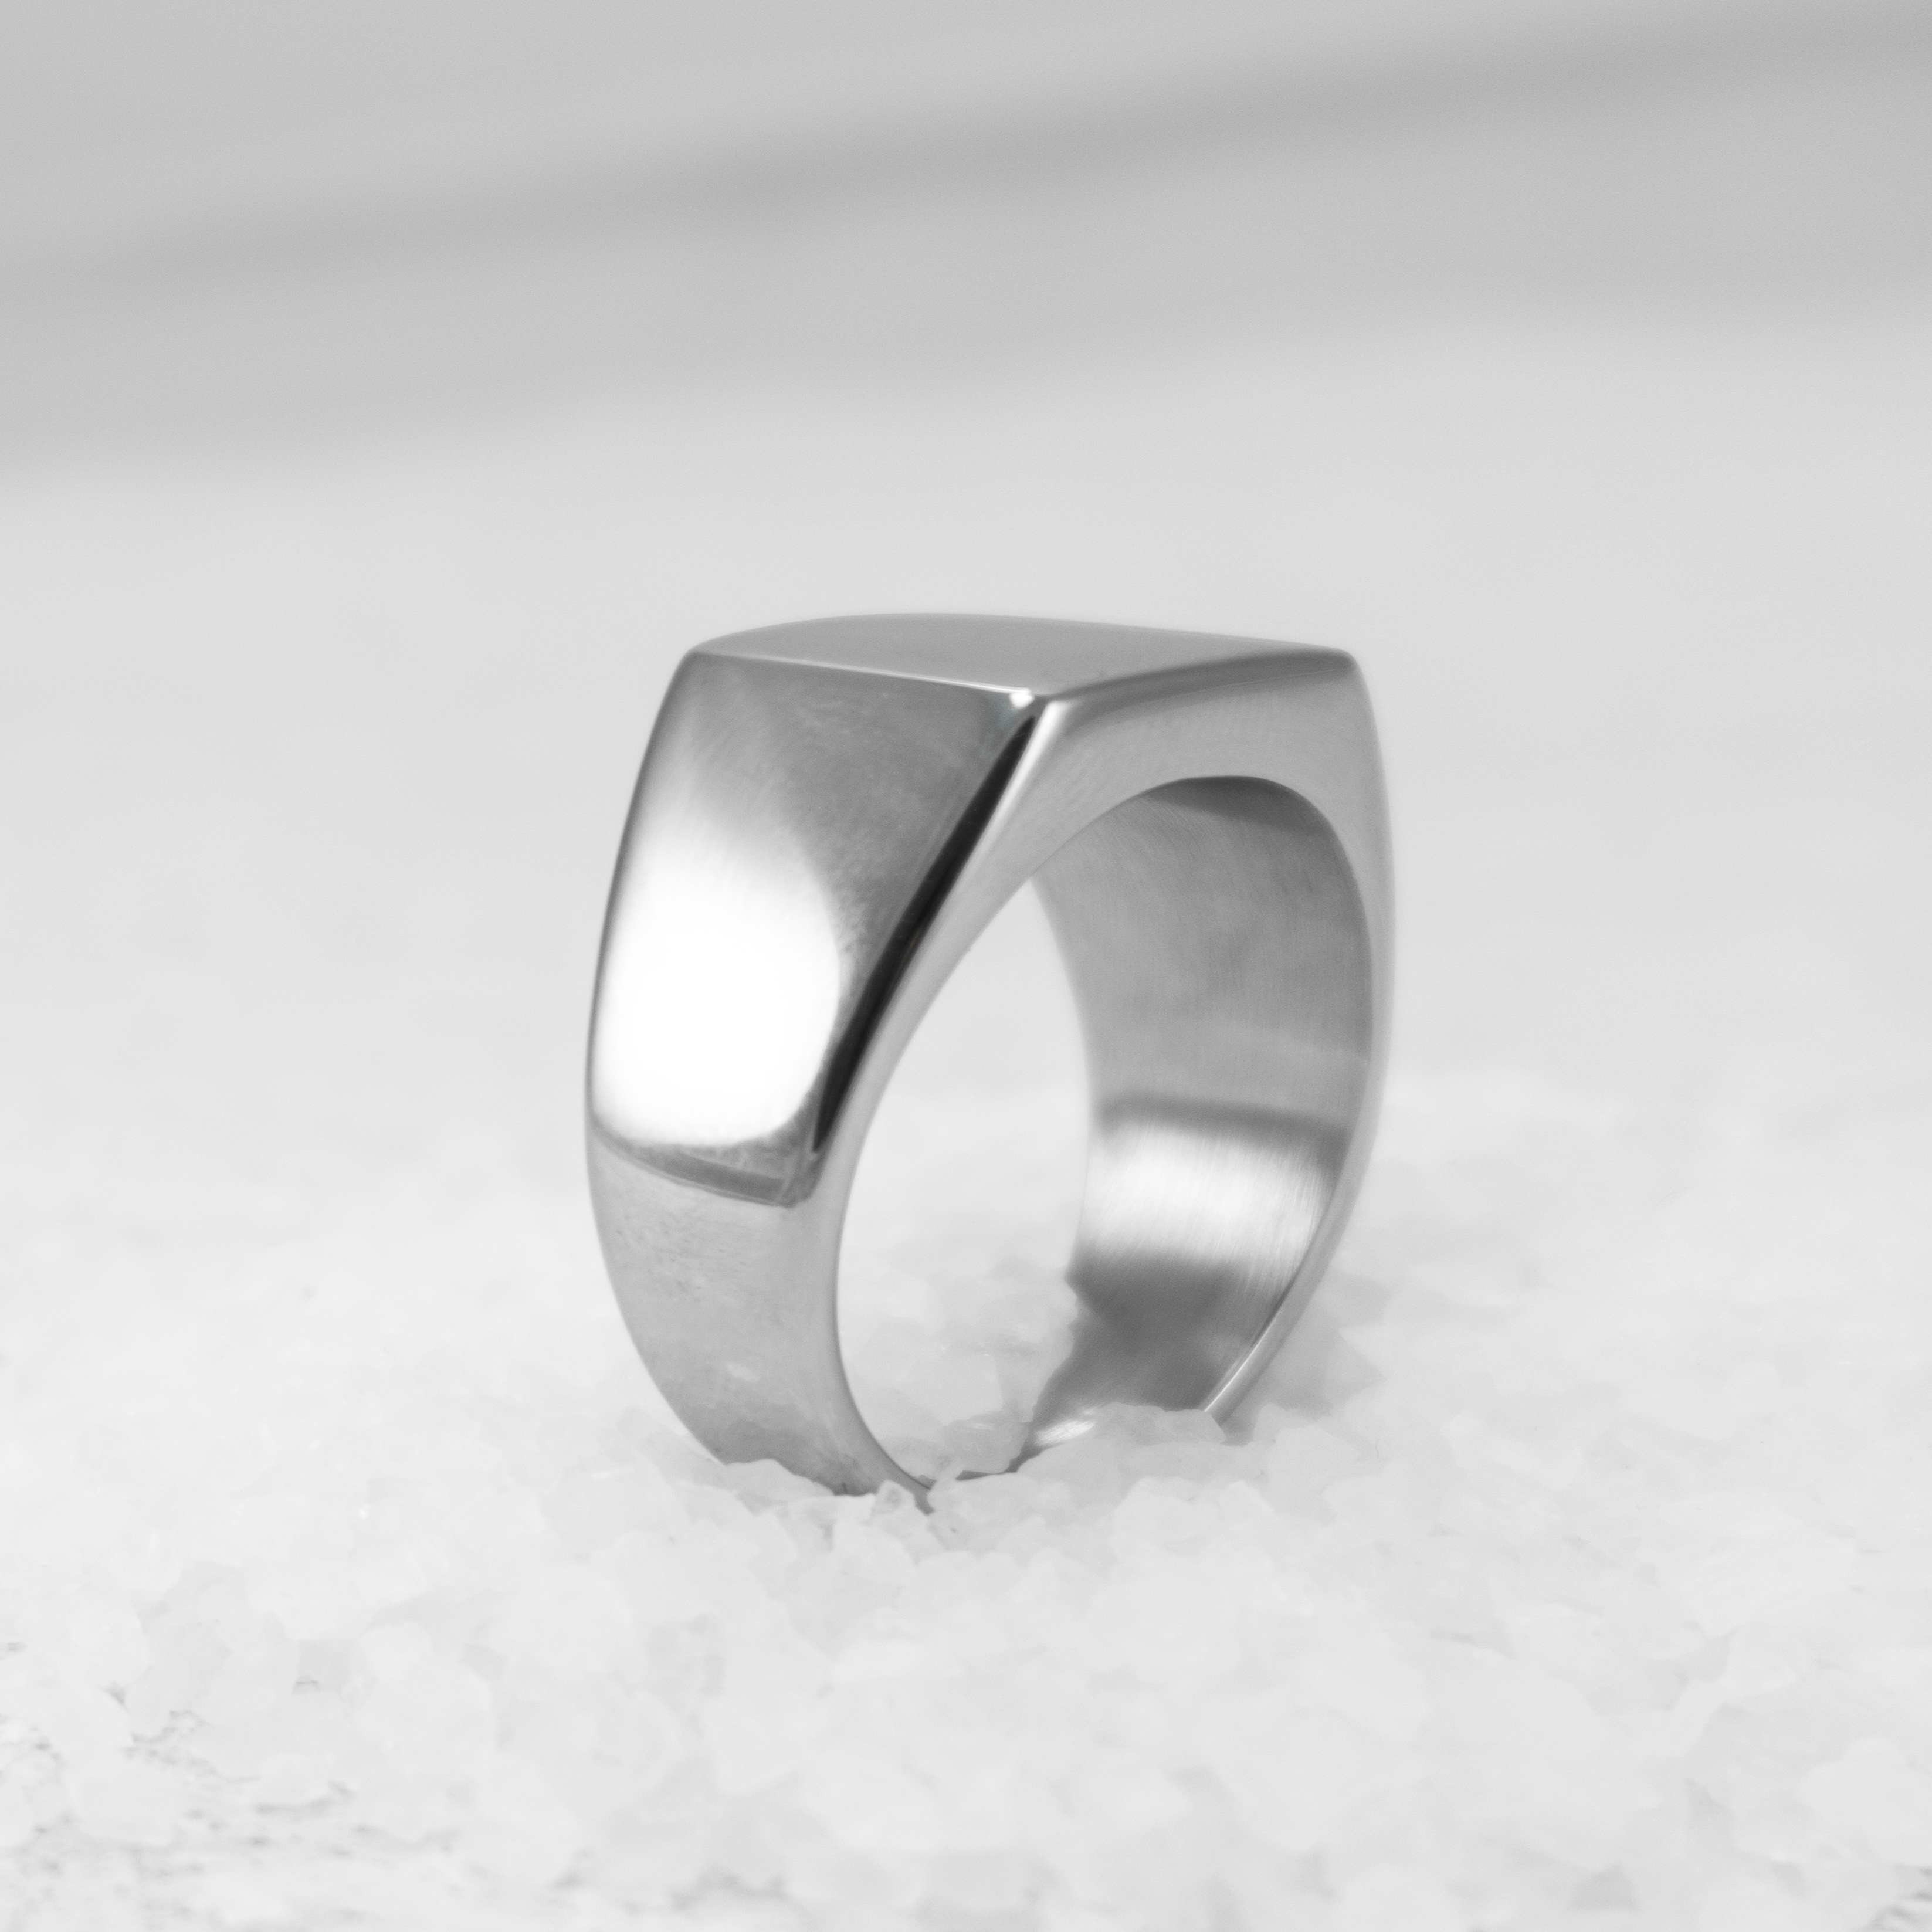 stainless steal signet ring 1a